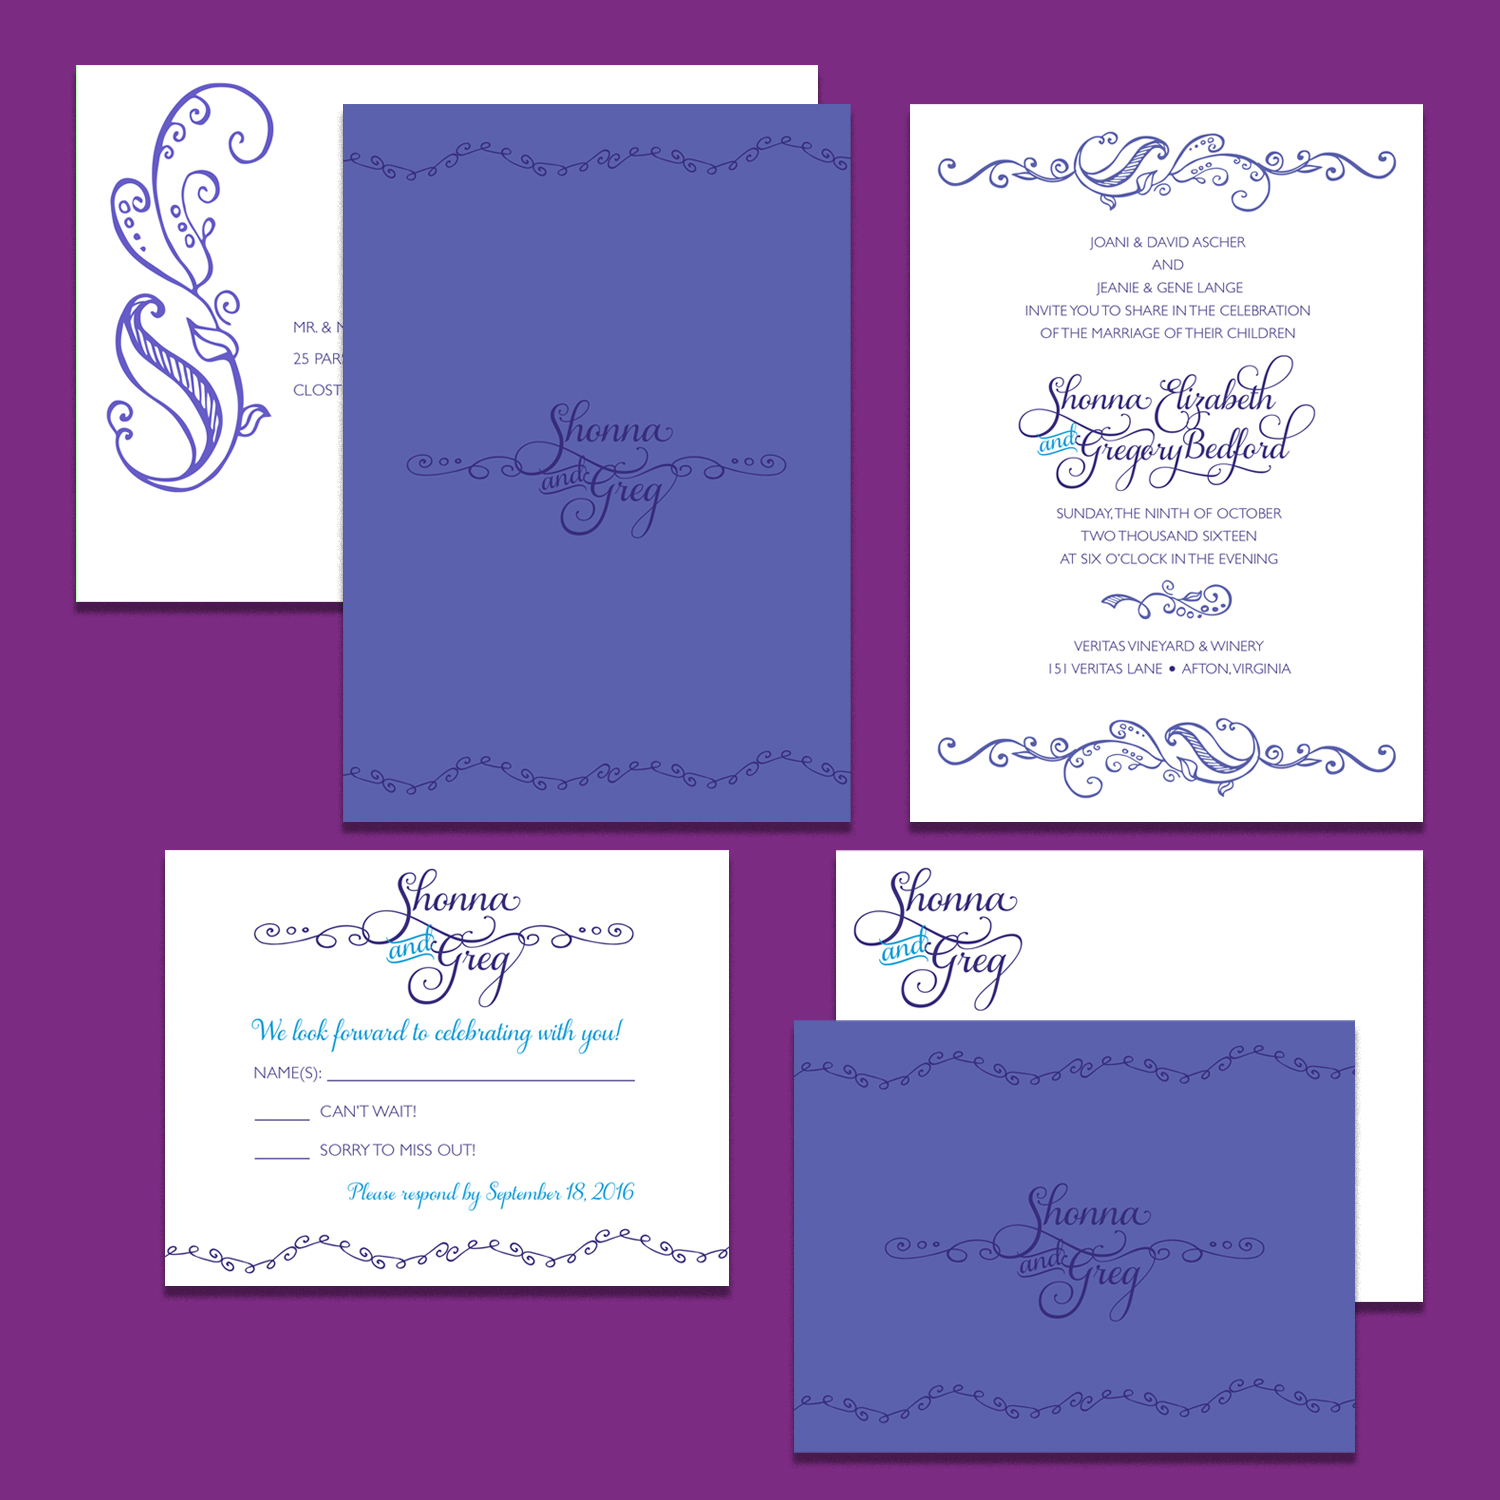 Wedding invitation printed on front and back; matching envelope; response card; folded notecard with matching envelope